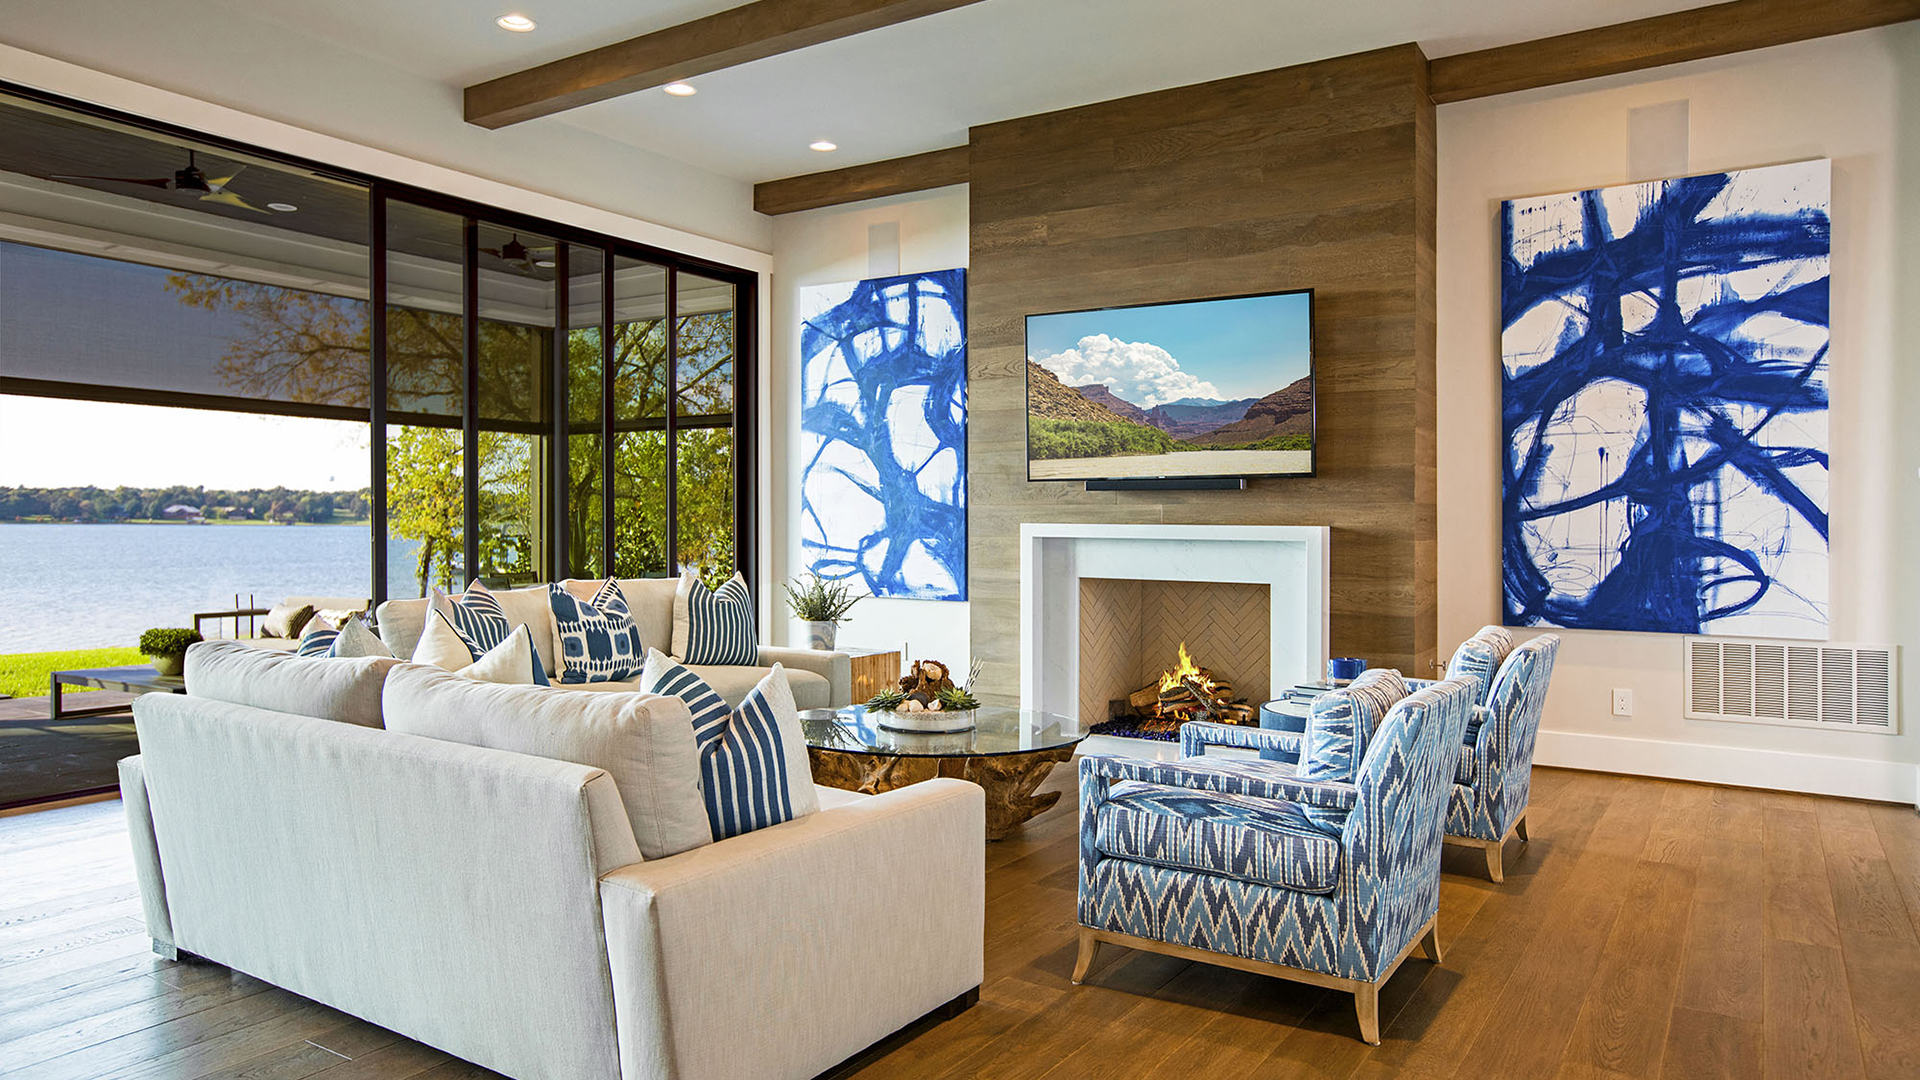 Living room overlooking a lake. Virtual background to use on Zoom, Microsoft Teams, Skype, Google Meet, WebEx or any other compatible app.